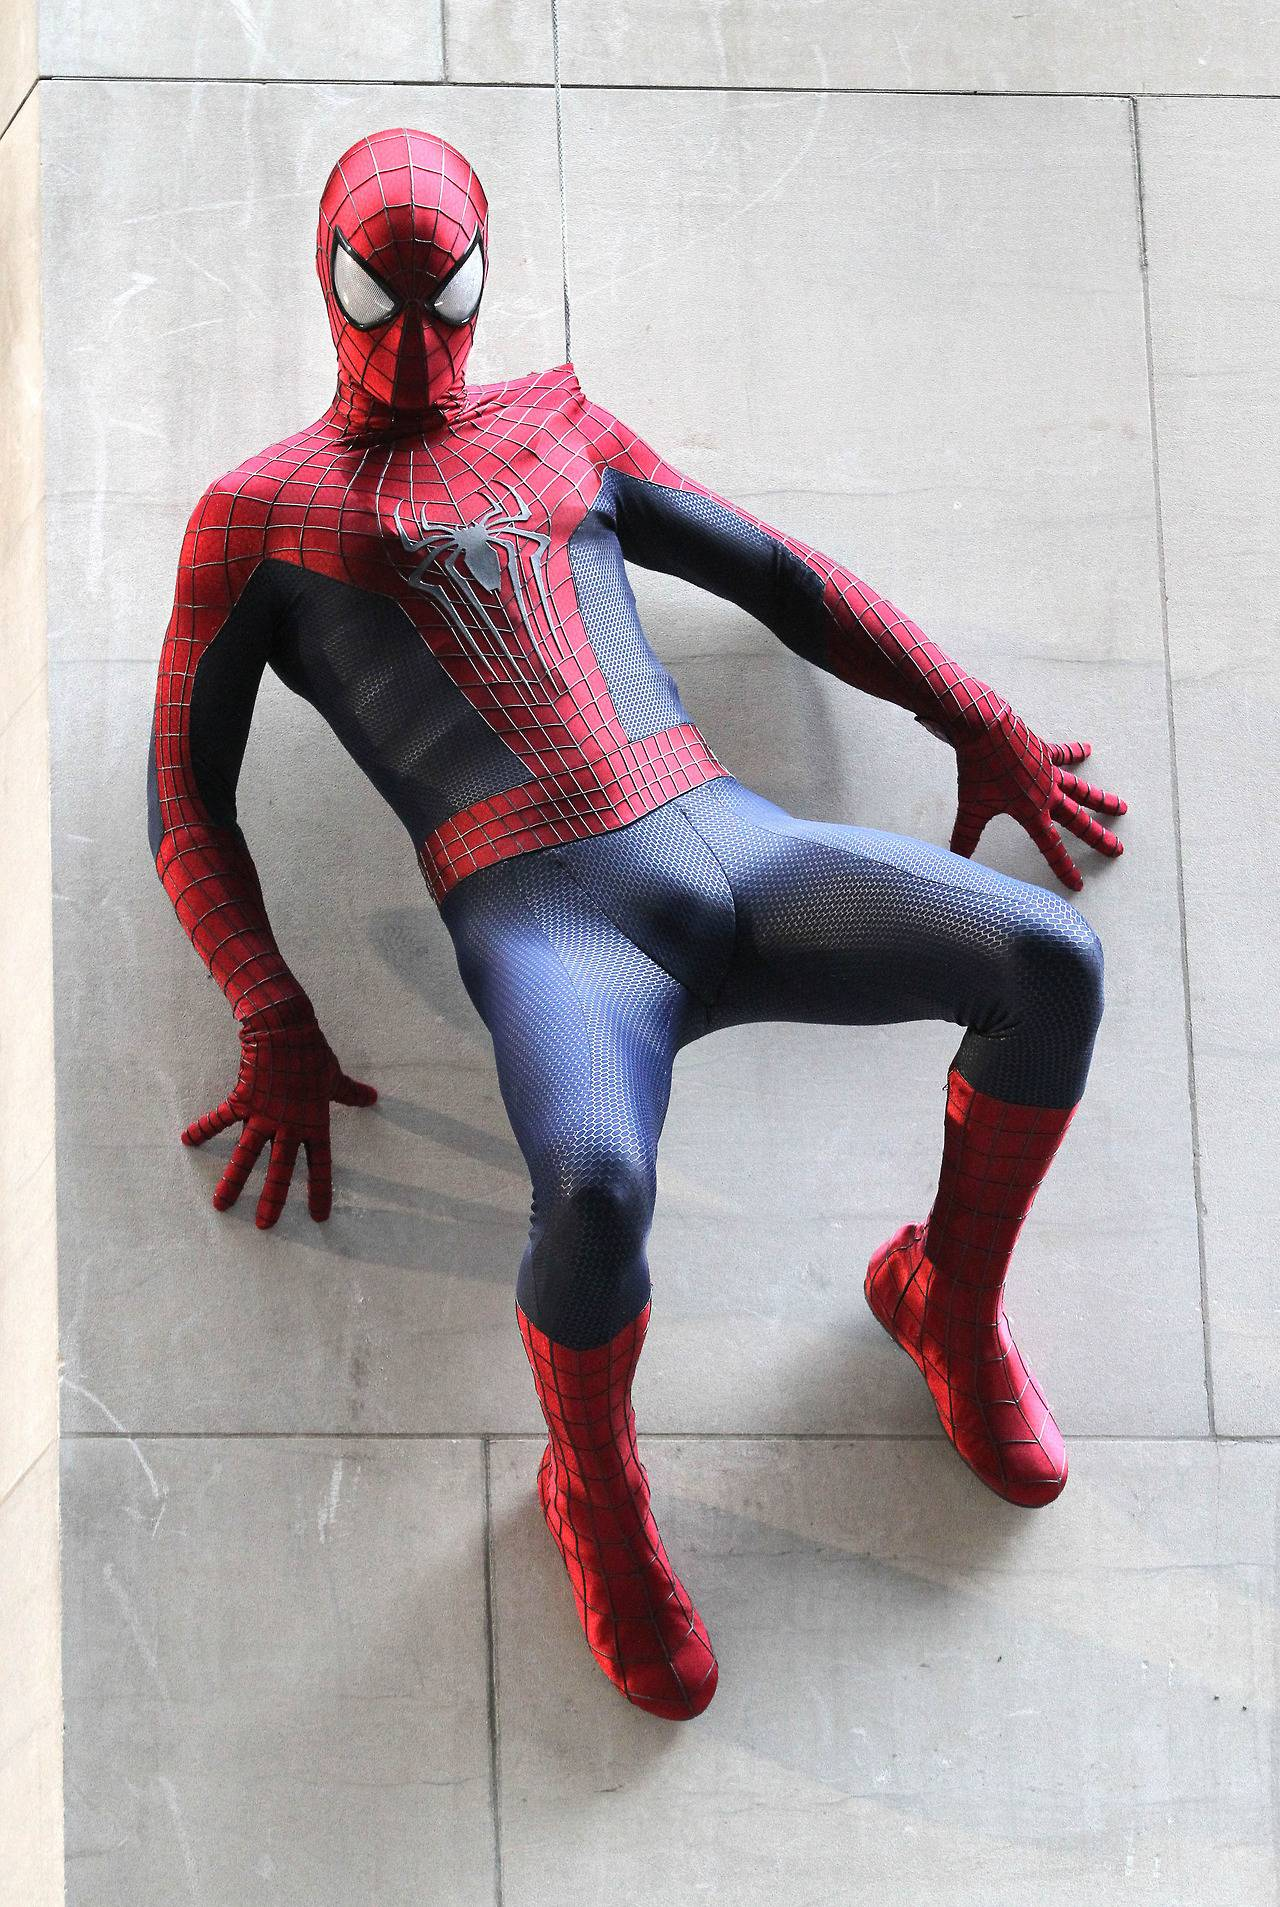 Gallery For gt The Amazing Spider Man 2 Costume Design